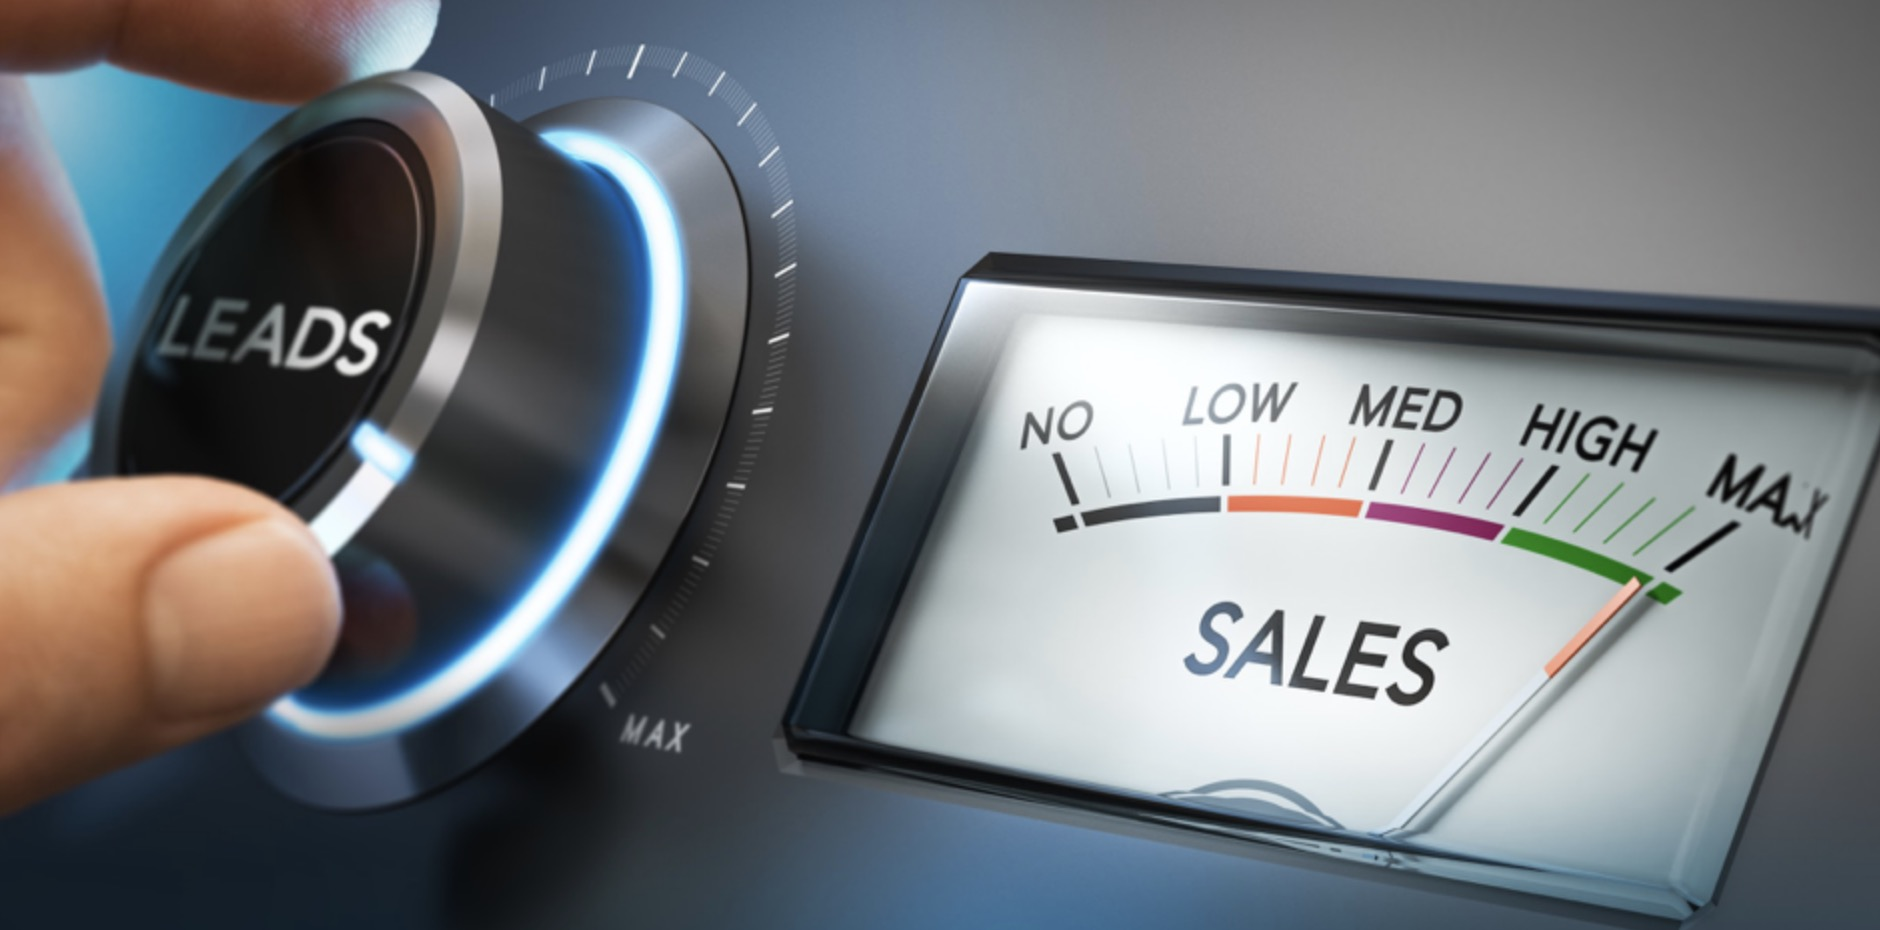 leads to sales meter